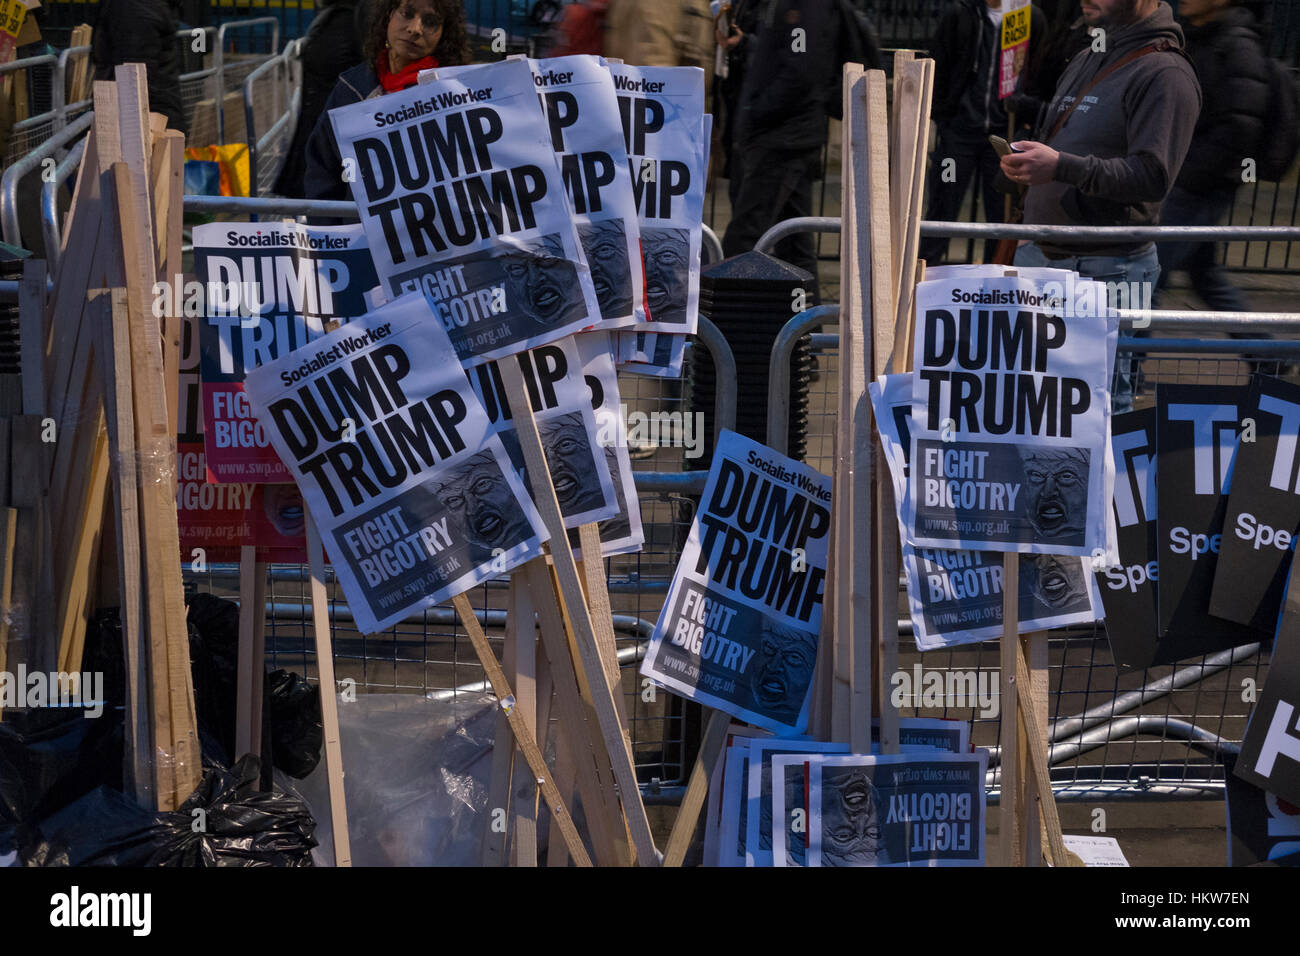 London, UK. 30th January, 2017. Amnesty International take part in London protest against Donald Trump's ban on - Stock Image